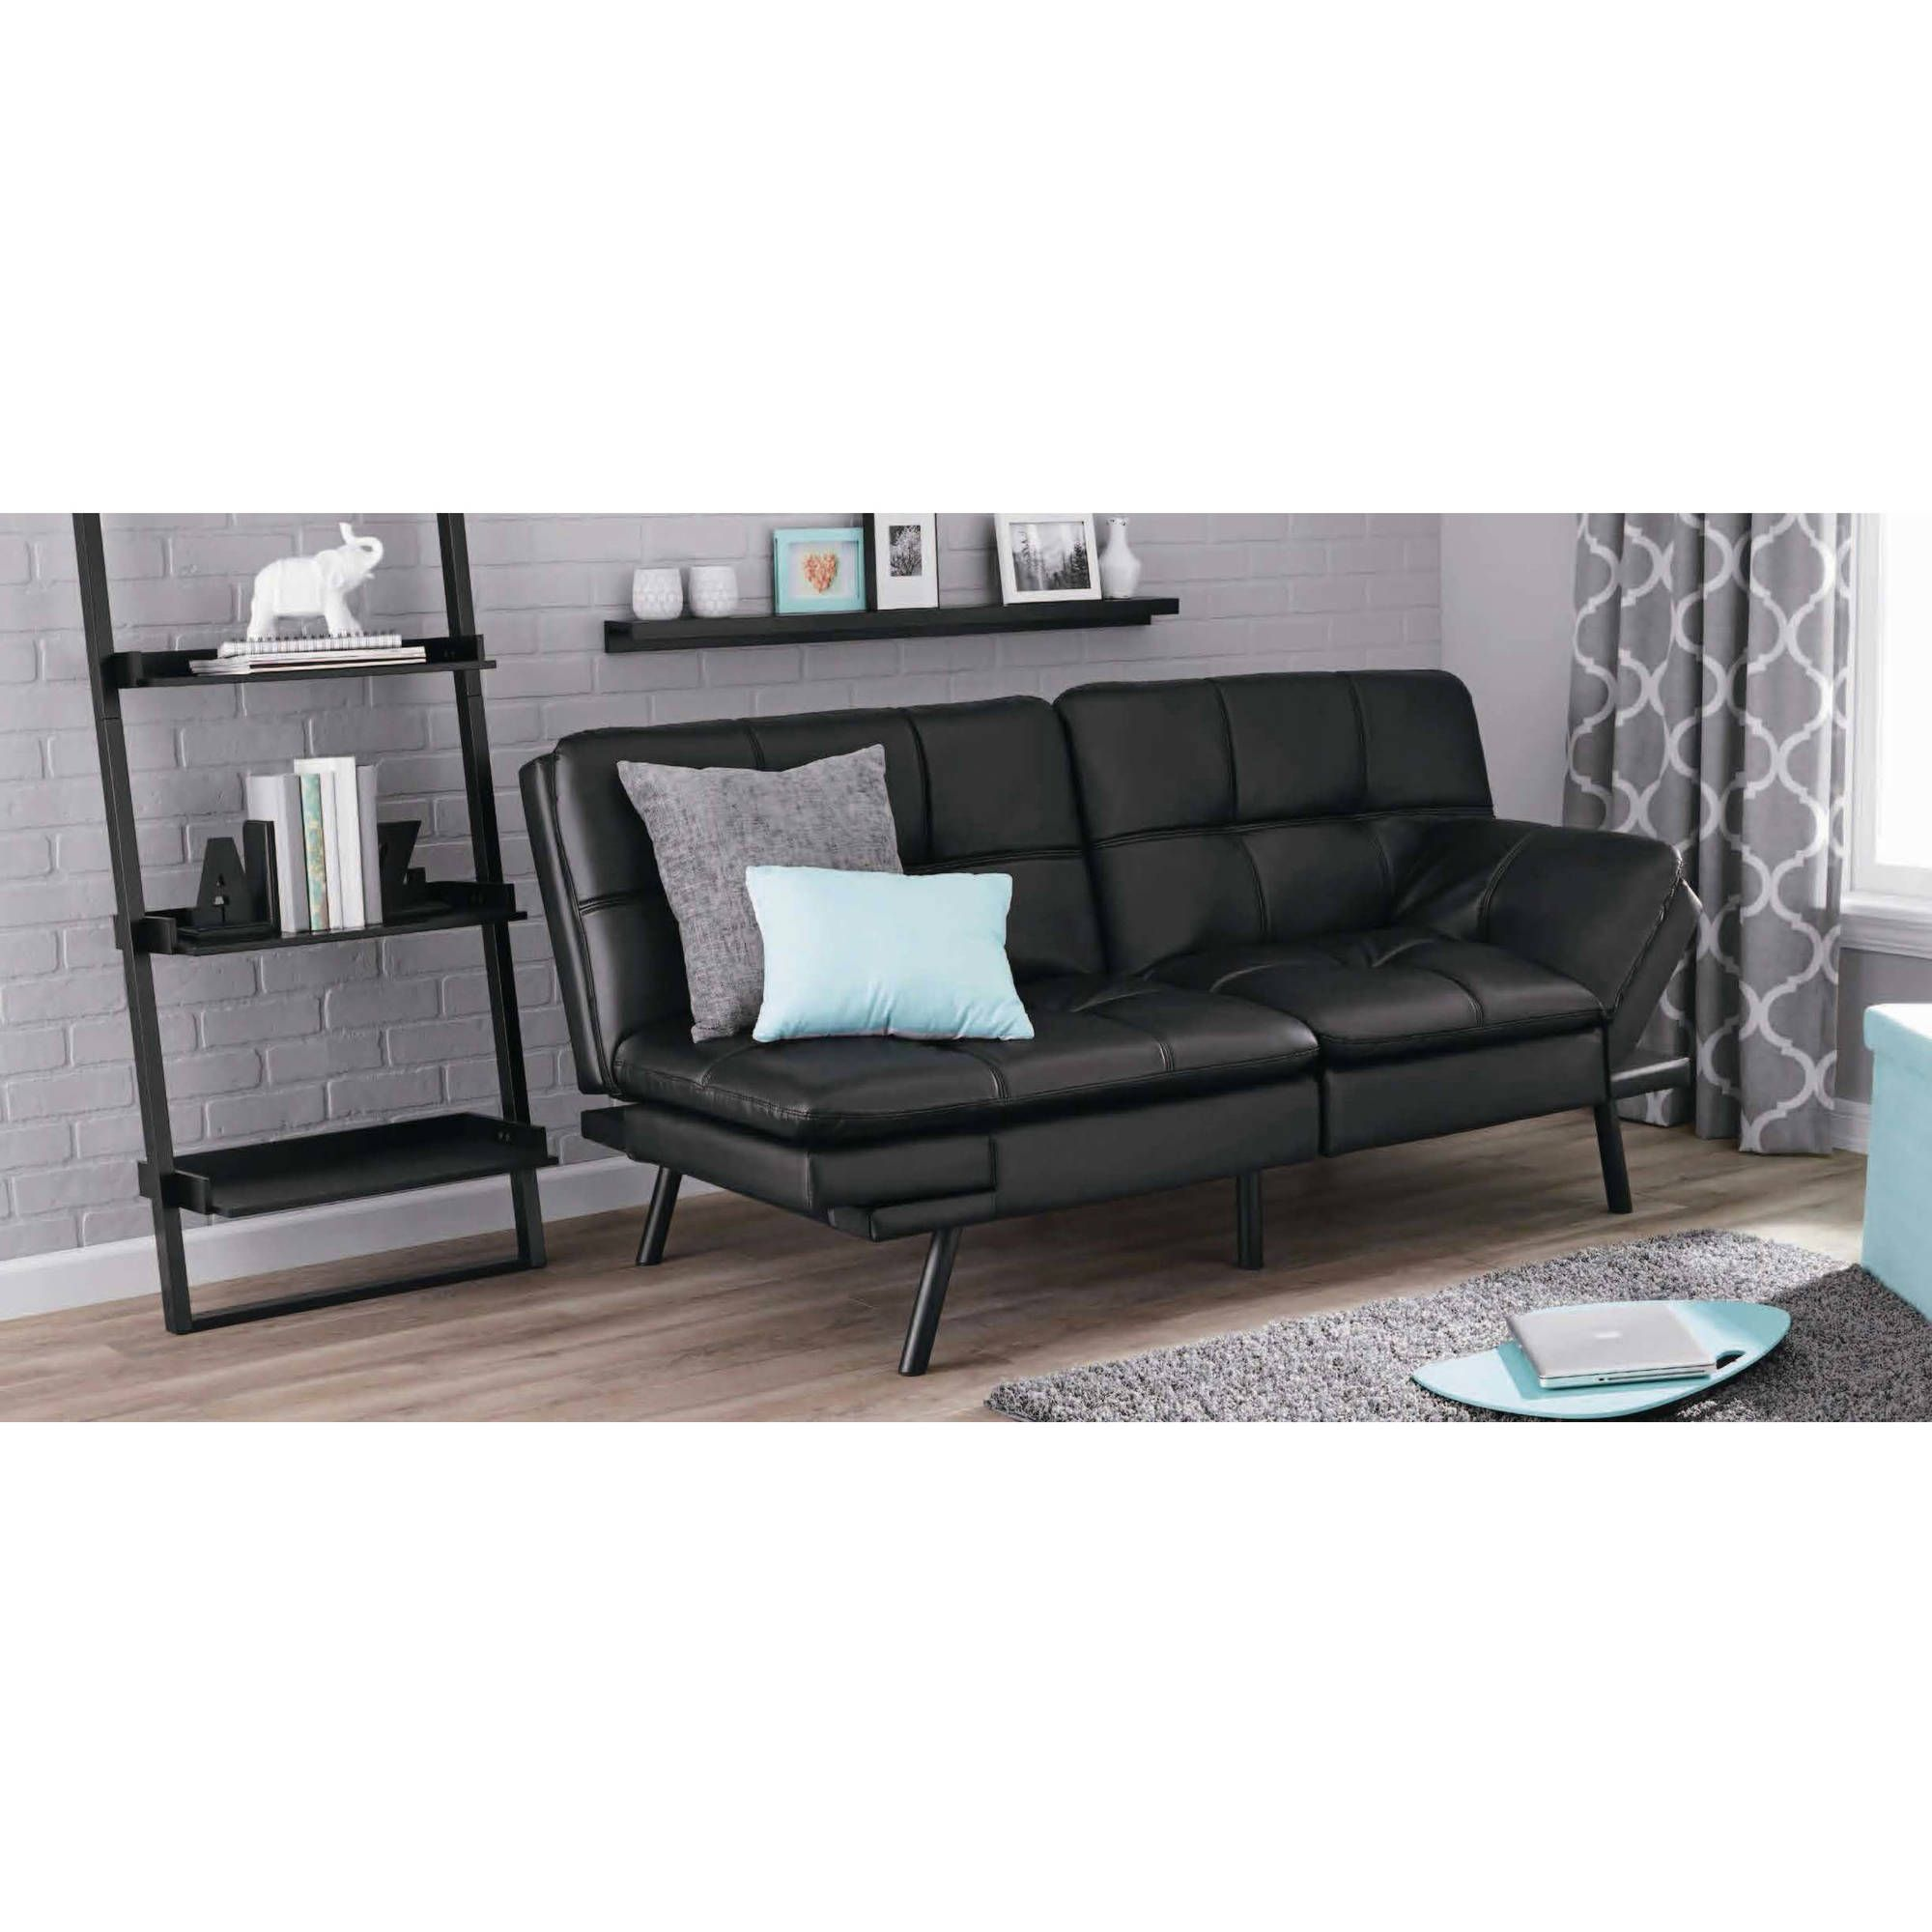 mainstays memory foam futon multiple colors walmart com design